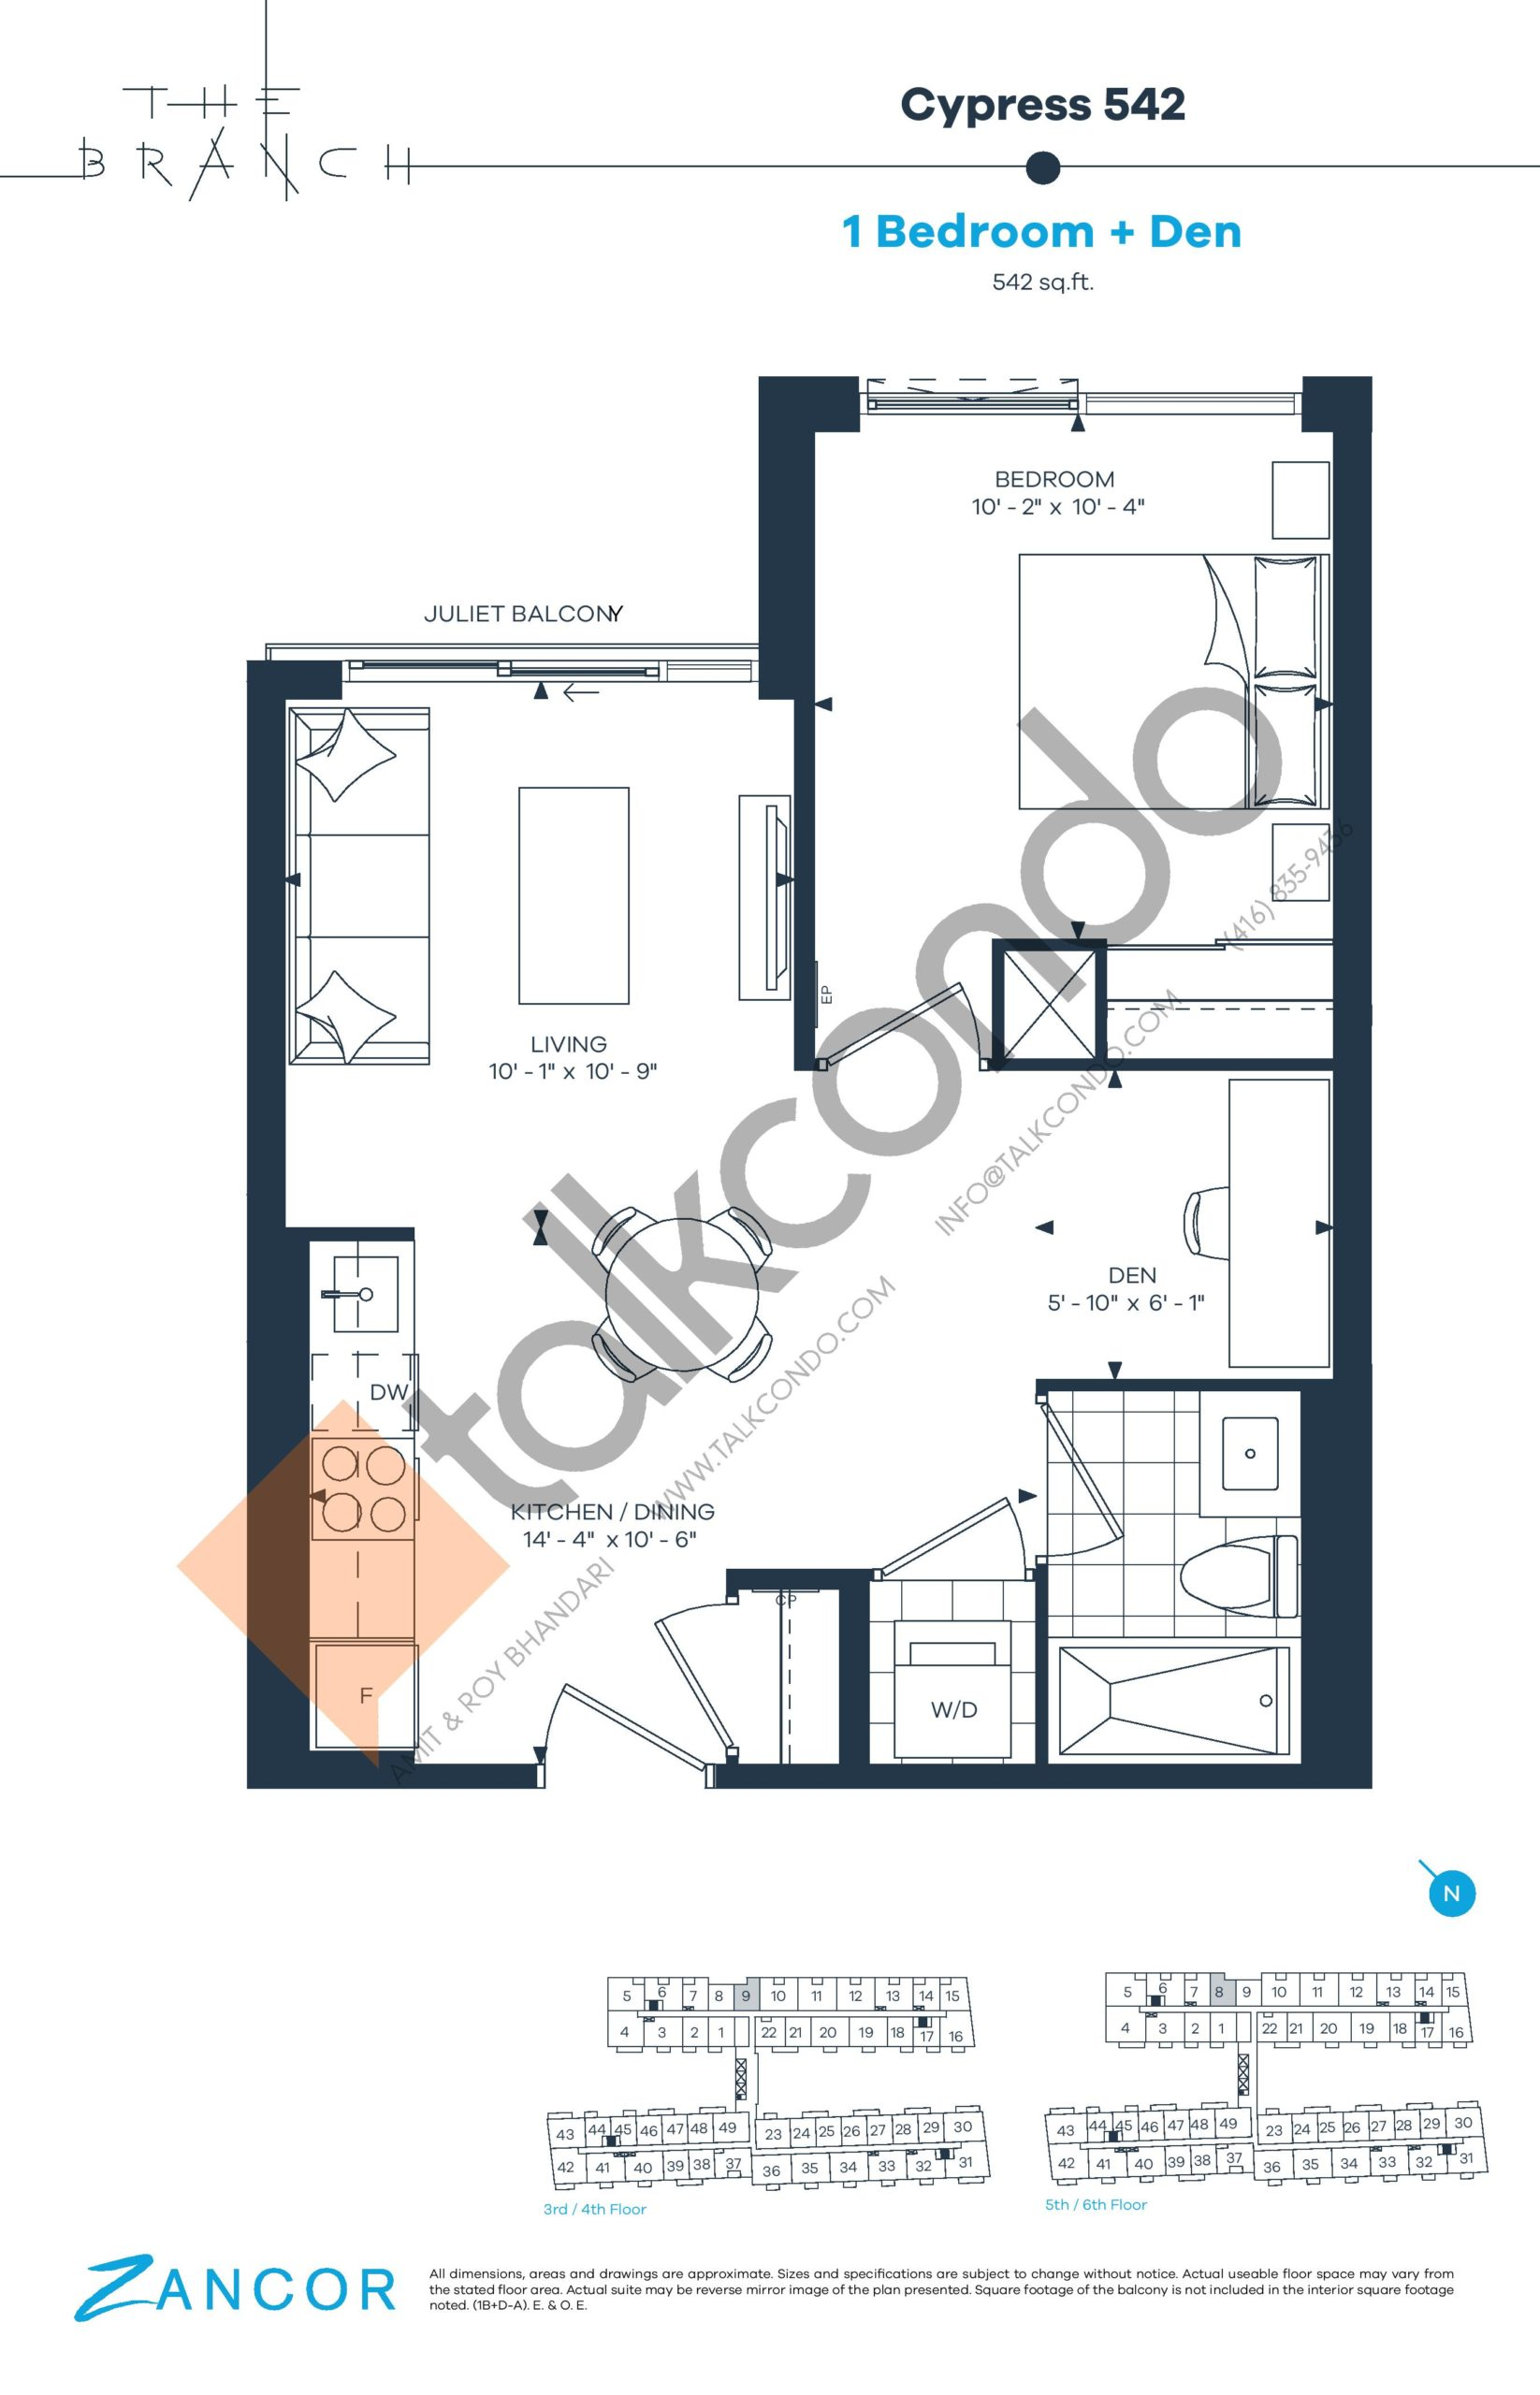 Cypress 542 Floor Plan at The Branch Condos - 542 sq.ft